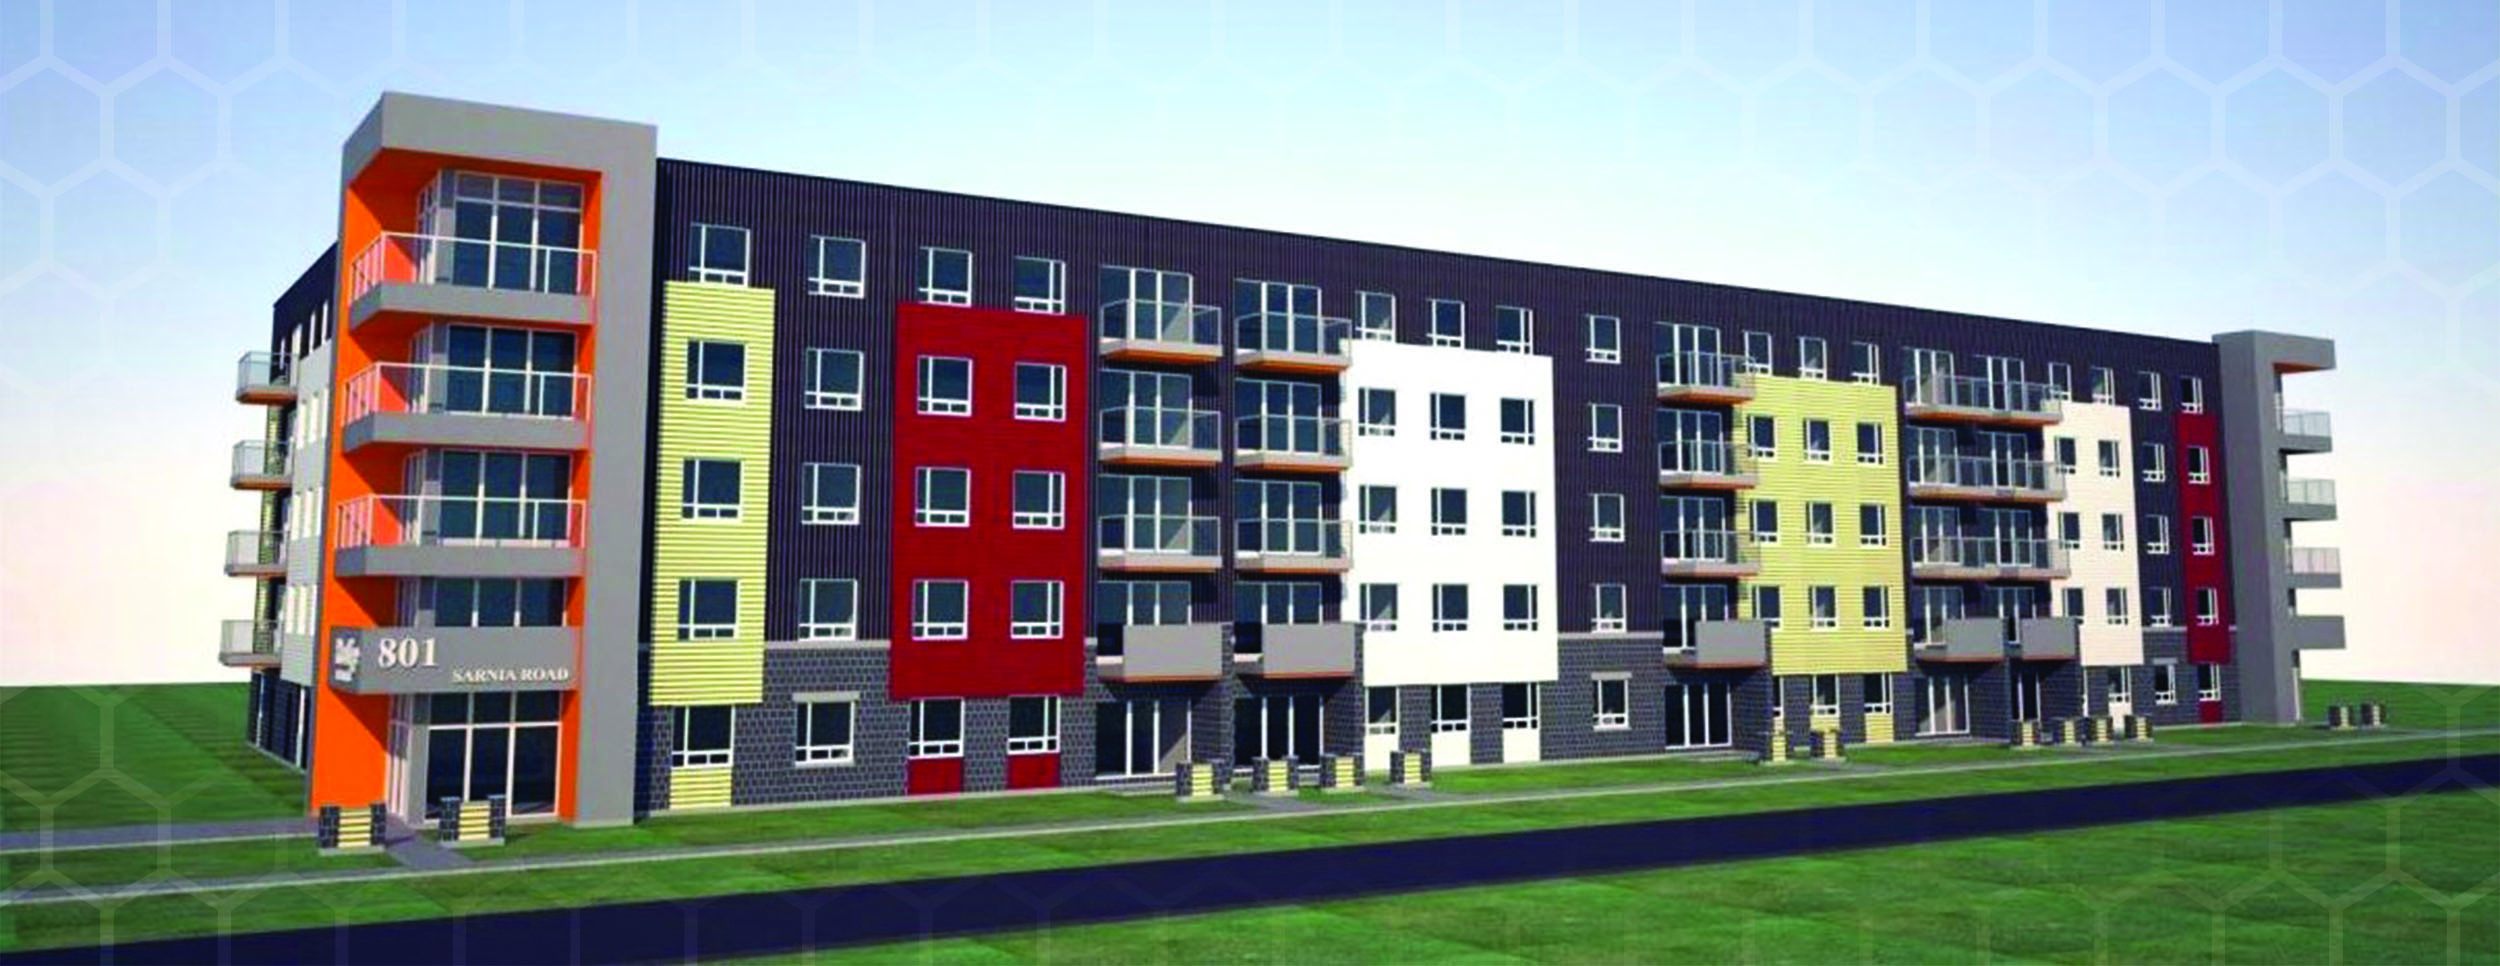 Exterior Rendering of a 5 Storey, 72 unit Apartment Building with balconies off the corner for each floor corner apartment and gray overall color, that has segments of red, white, and yellow